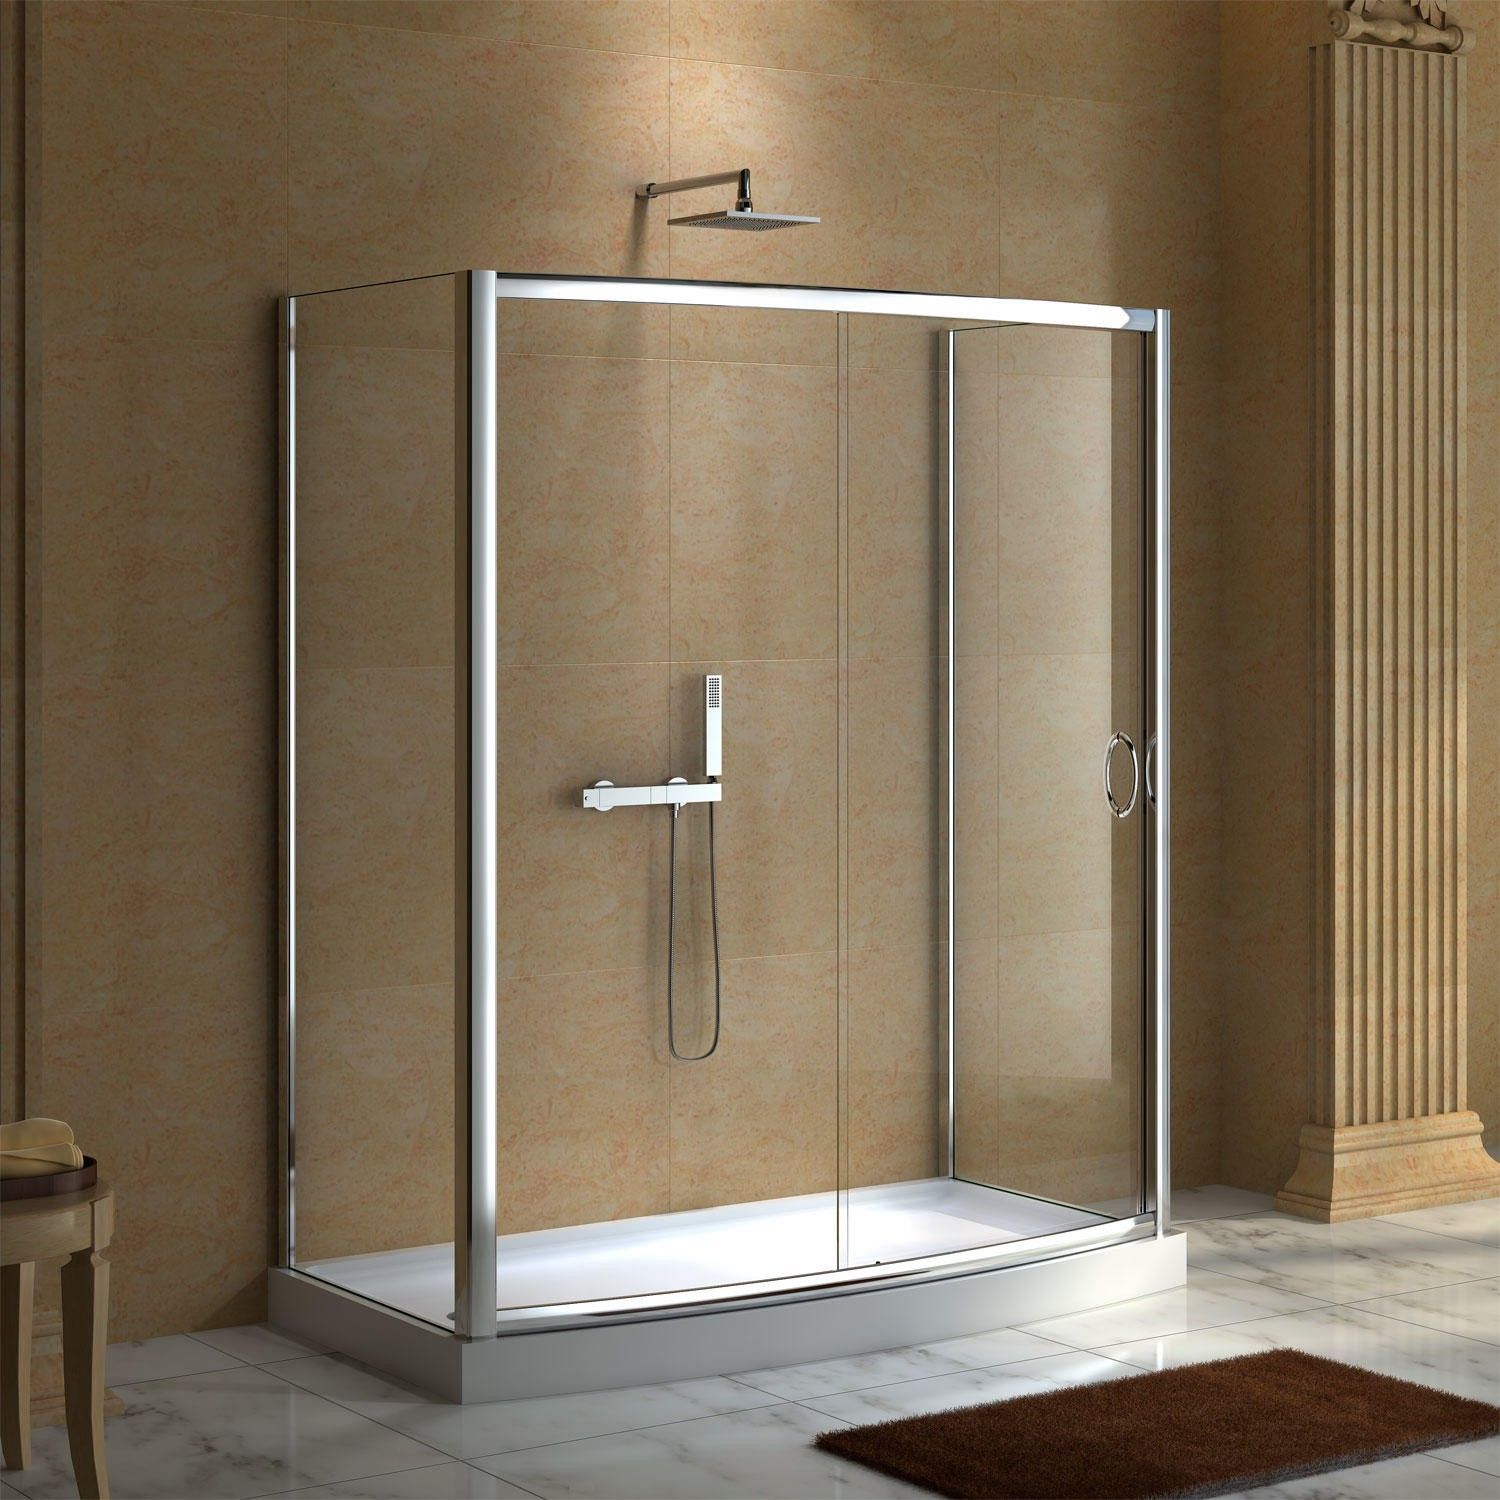 59 Quot X 30 Quot Karev Shower Enclosure With Tray 927 Master